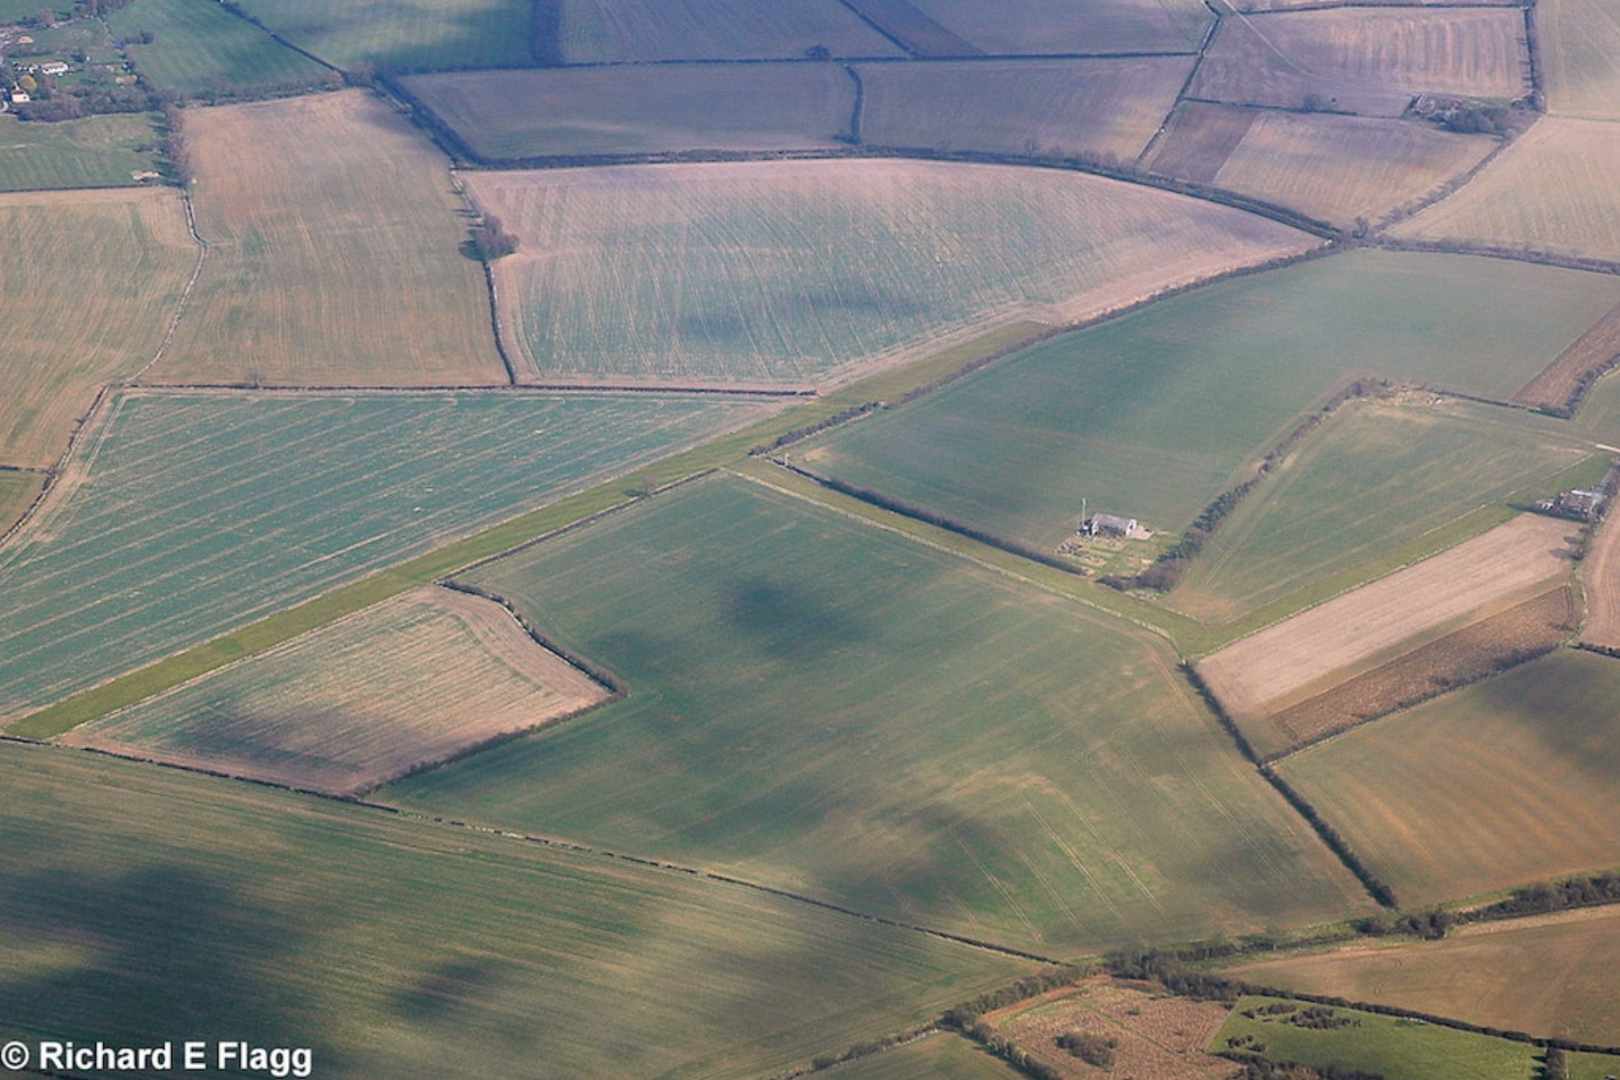 001Aerial View of Manor Farm Airfield - 22 March 2009.png